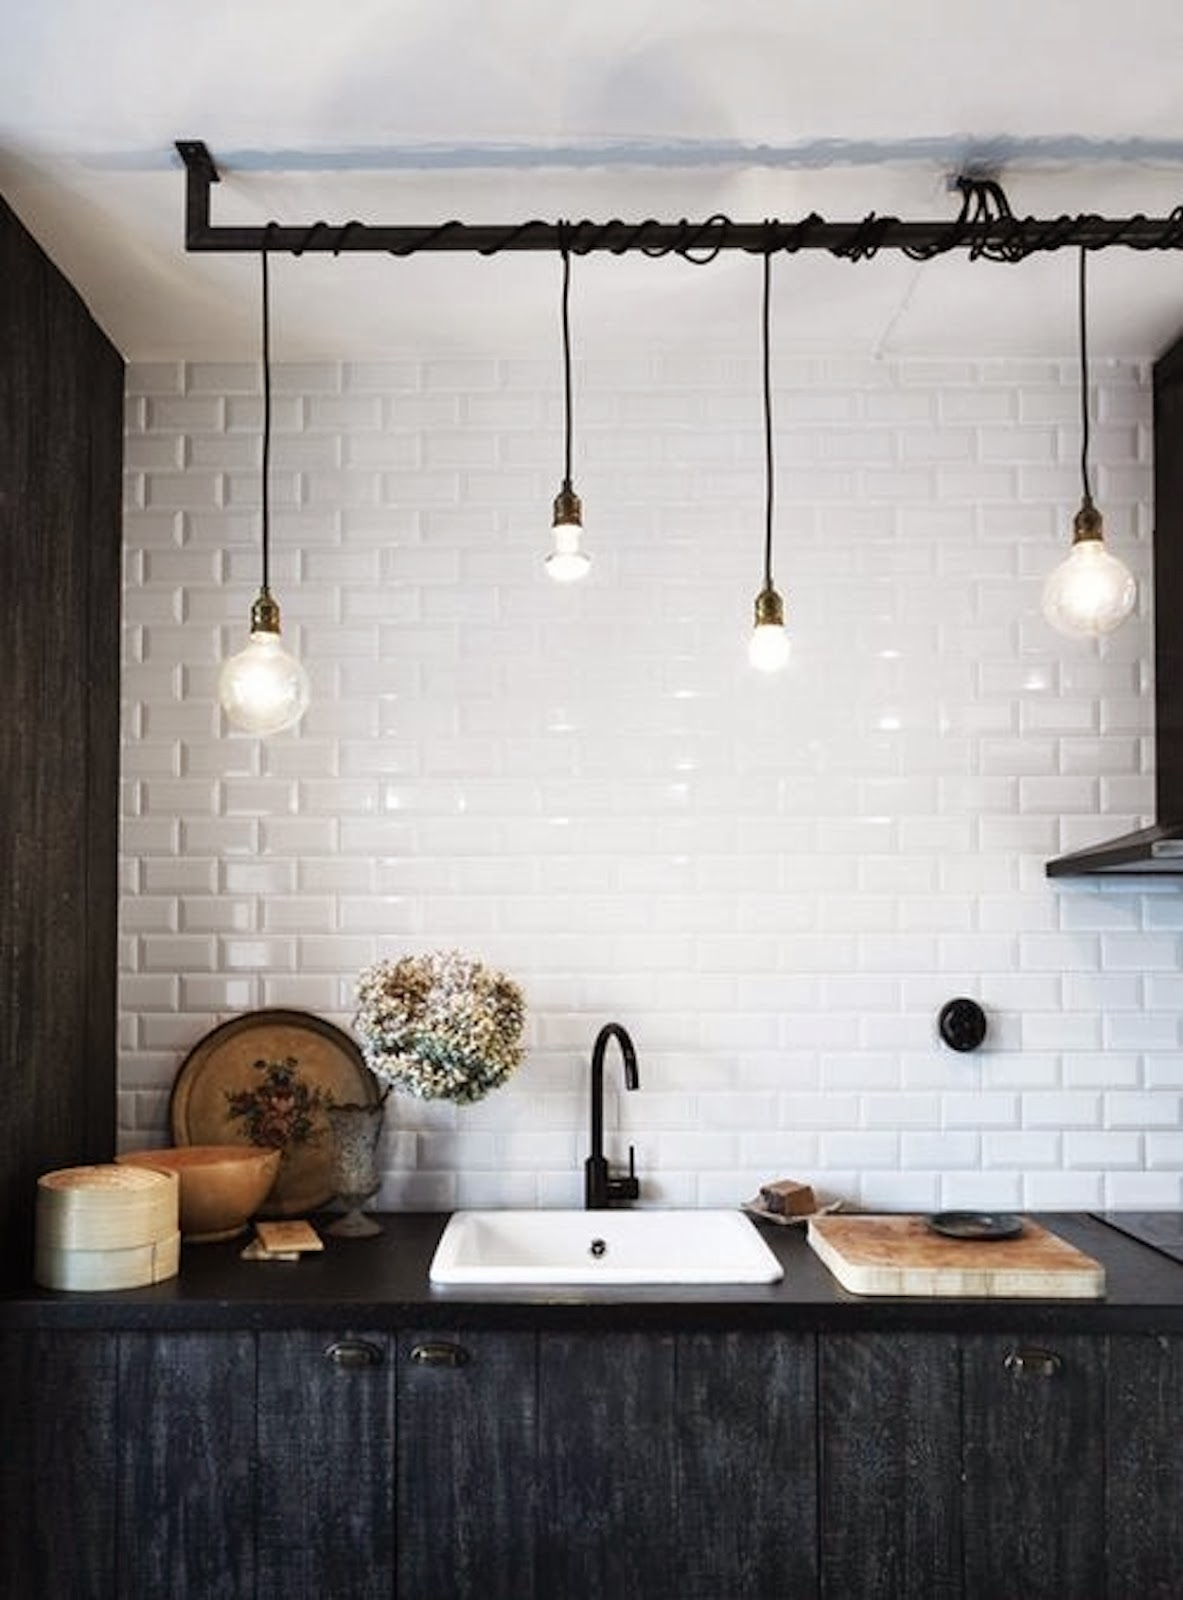 Kitchen subway tiles are back in style 50 inspiring designs the finish on the cabinets and the lighting fixture are two key elements in this dcor dailygadgetfo Image collections